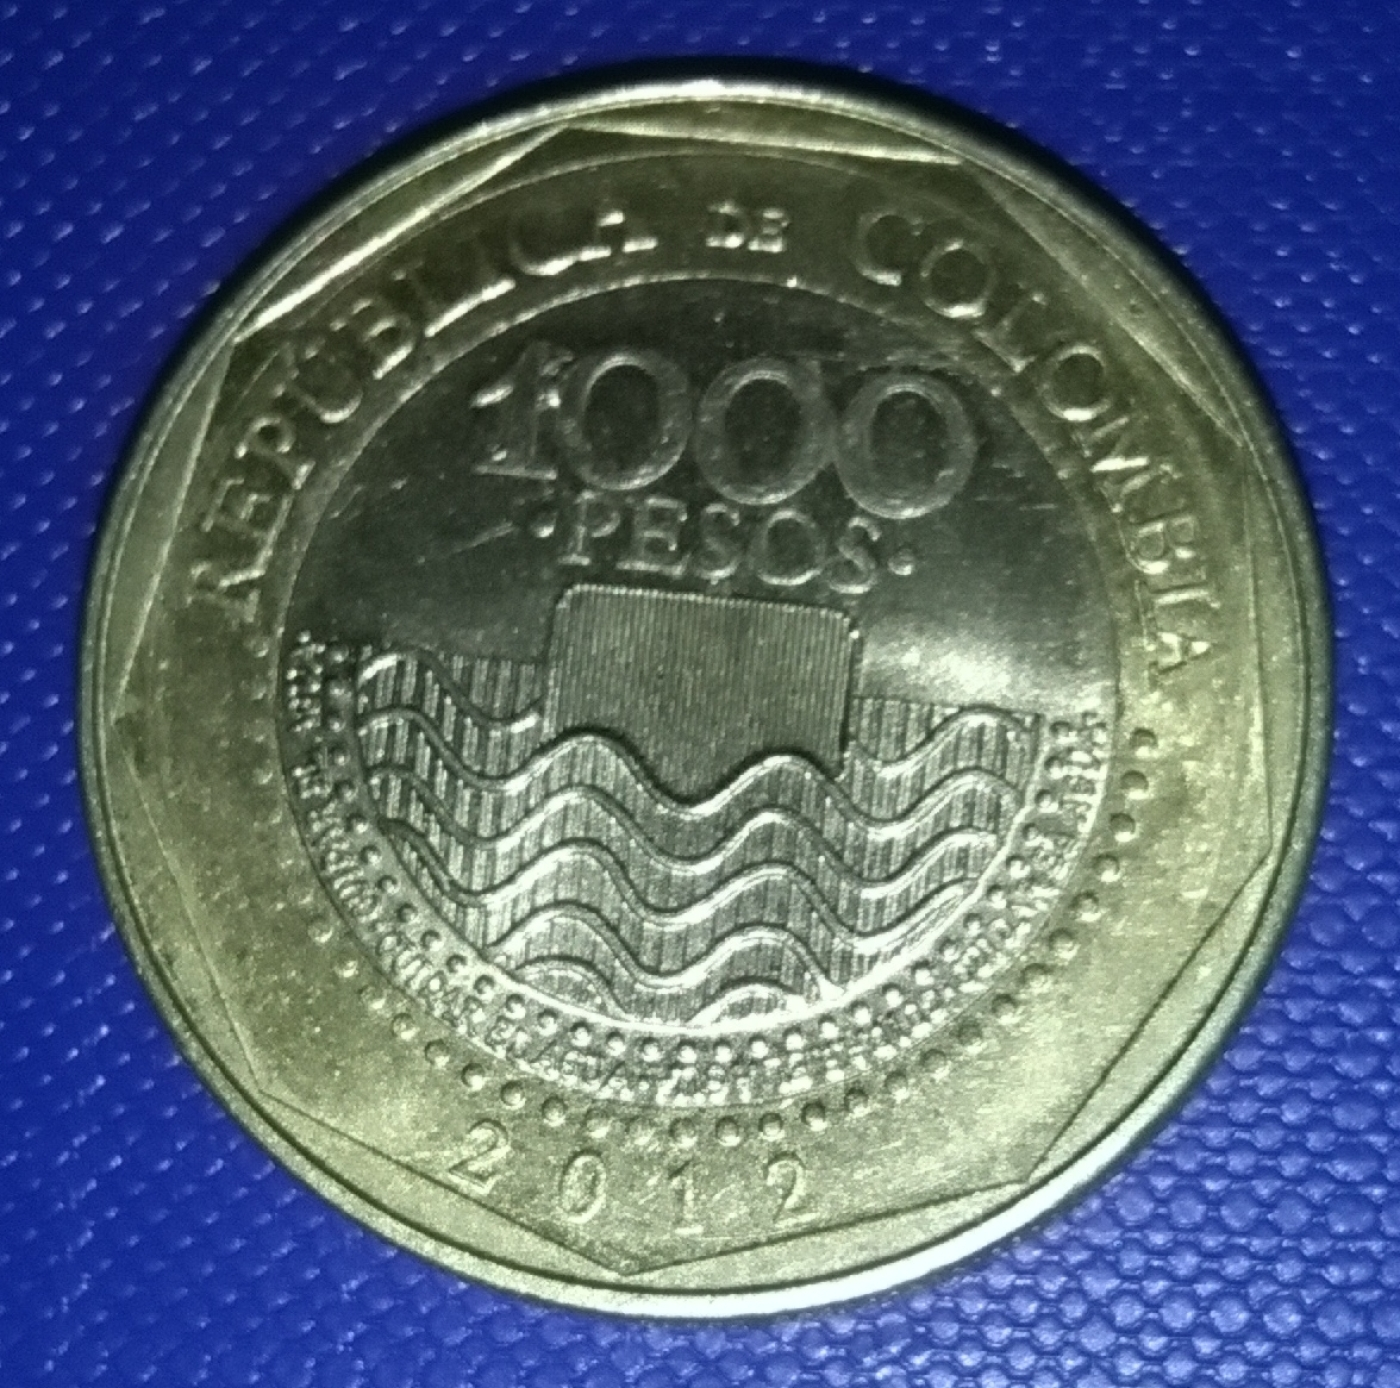 Colombia set of 4 coins 50-500 pesos 2012-2013 UNC